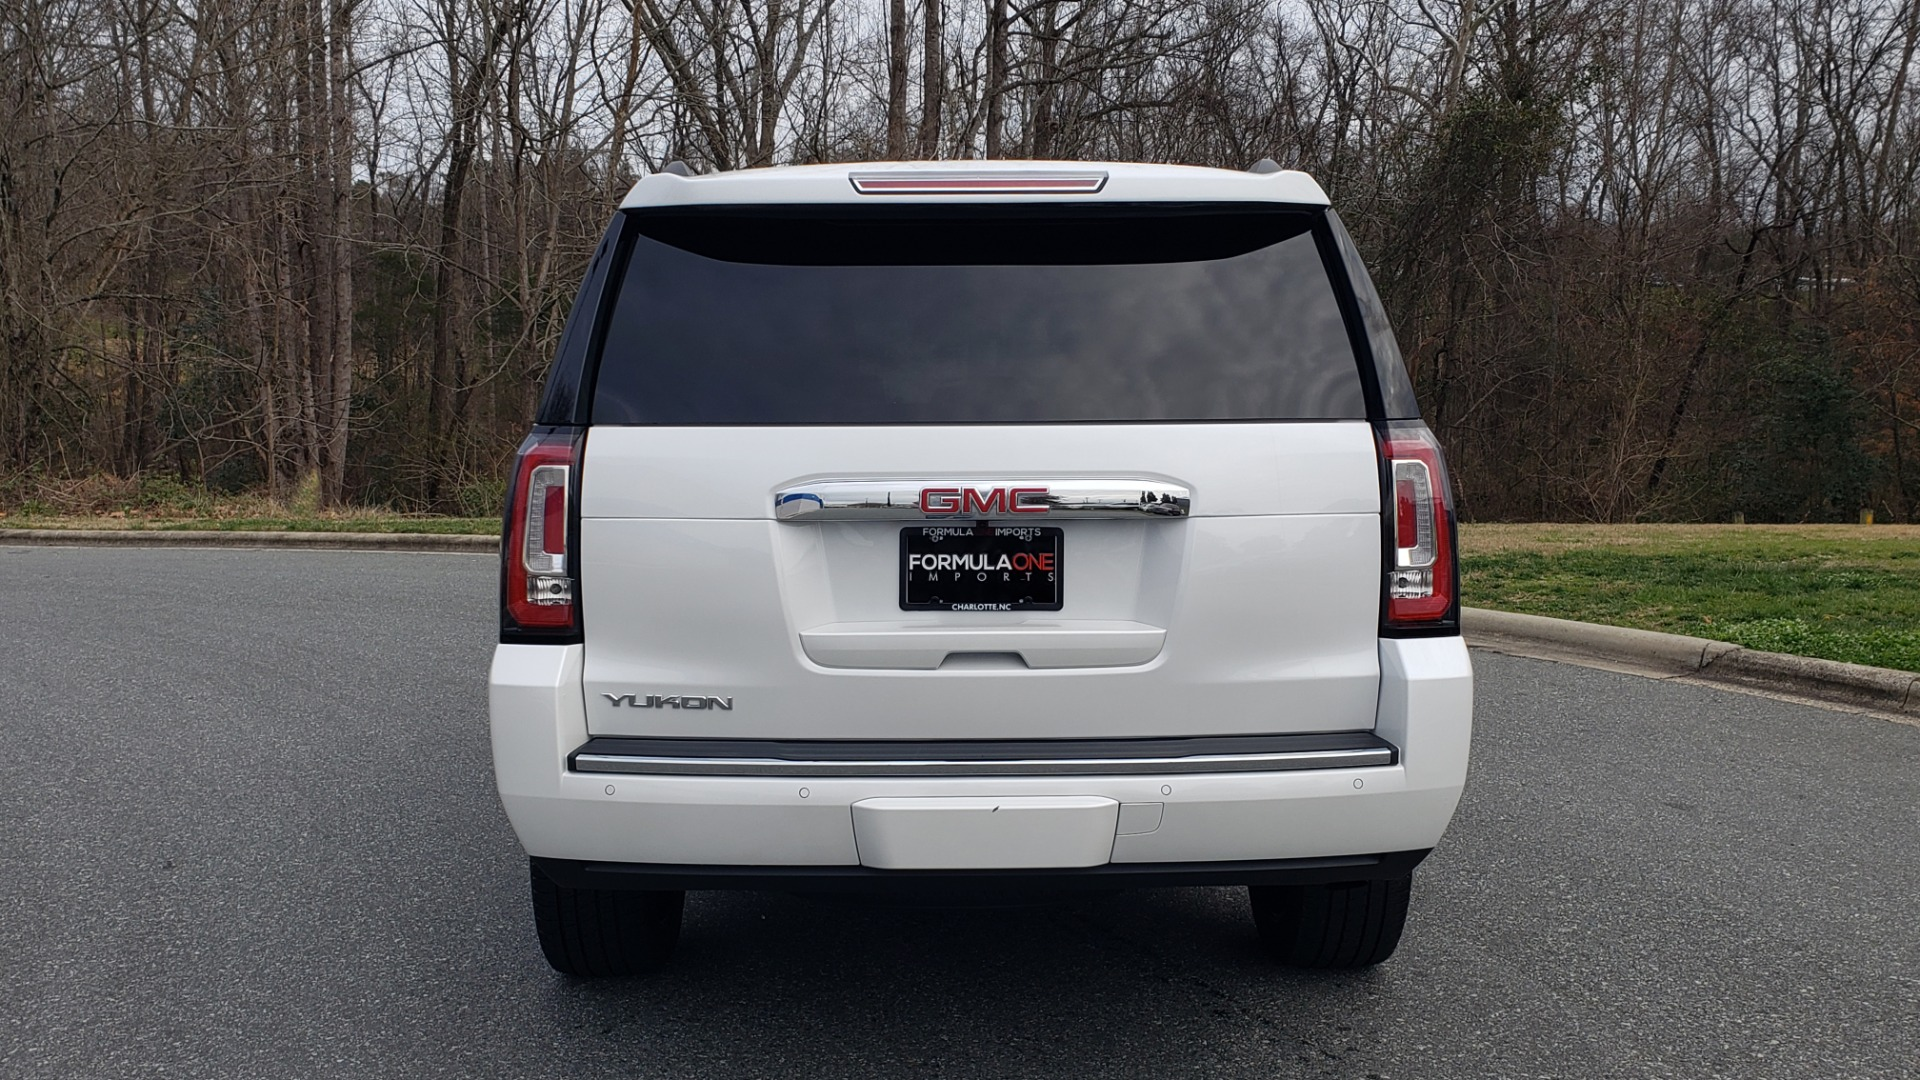 Used 2018 GMC YUKON DENALI 4WD / NAV / SUNROOF / BOSE / 3-ROW / REARVIEW for sale Sold at Formula Imports in Charlotte NC 28227 32